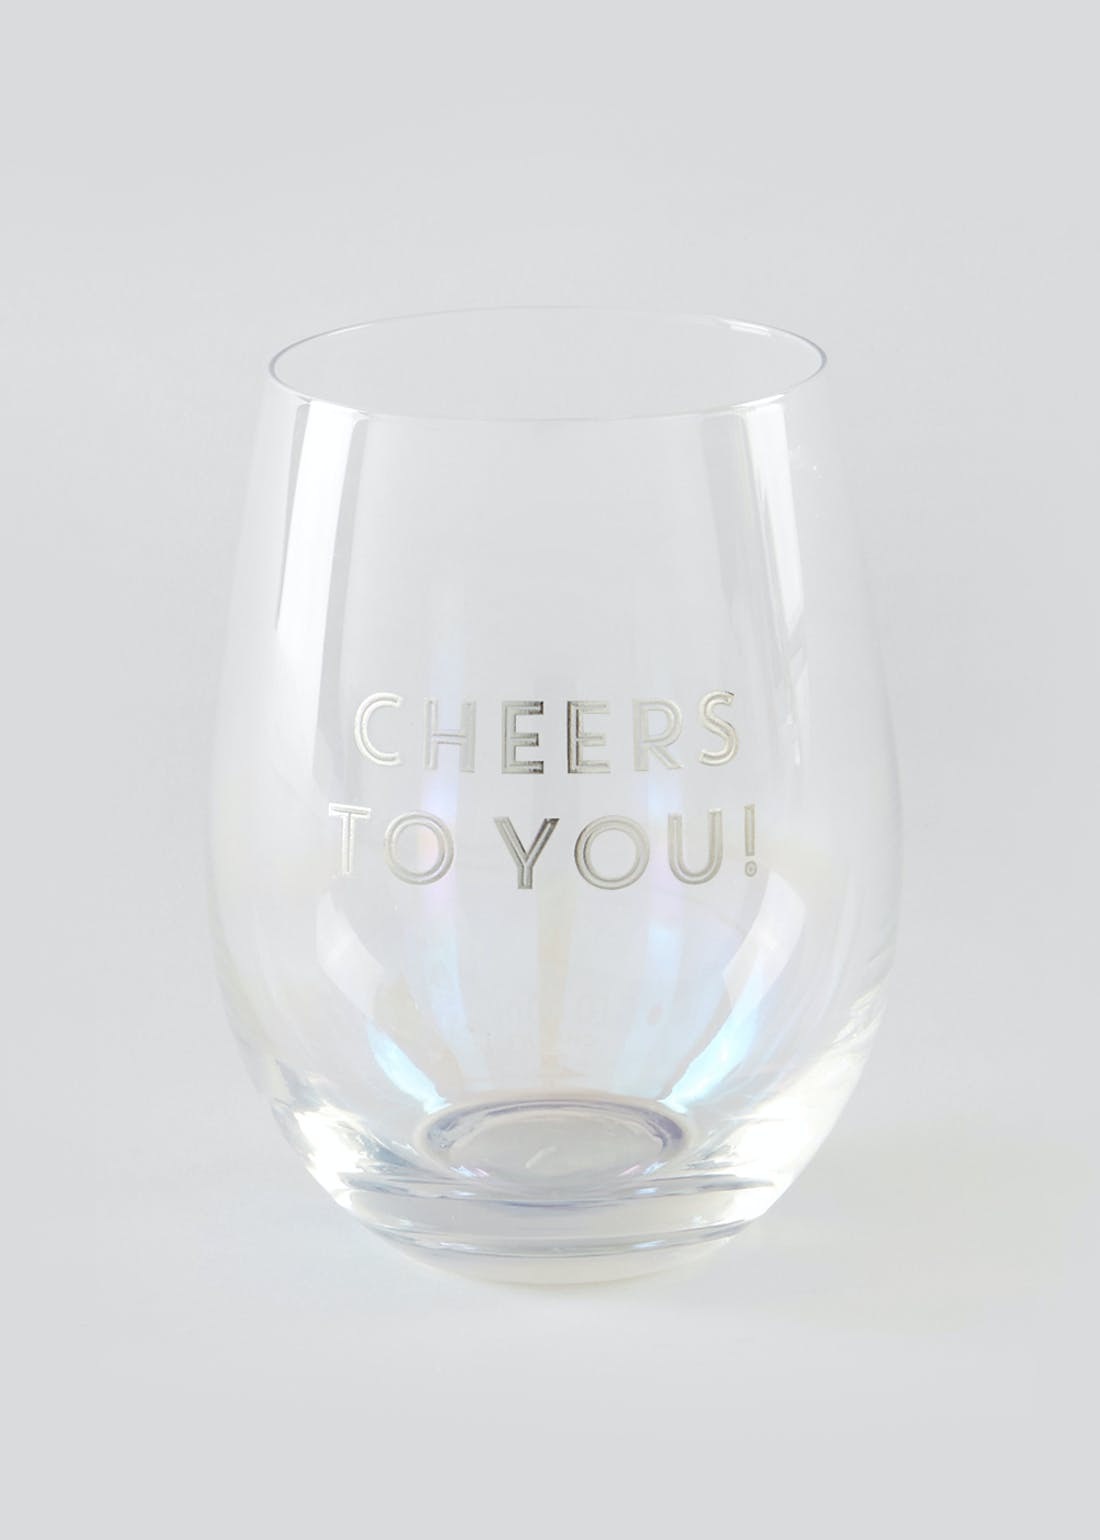 Cheers To You Tumbler Glass (11.5cm x 7.5cm)